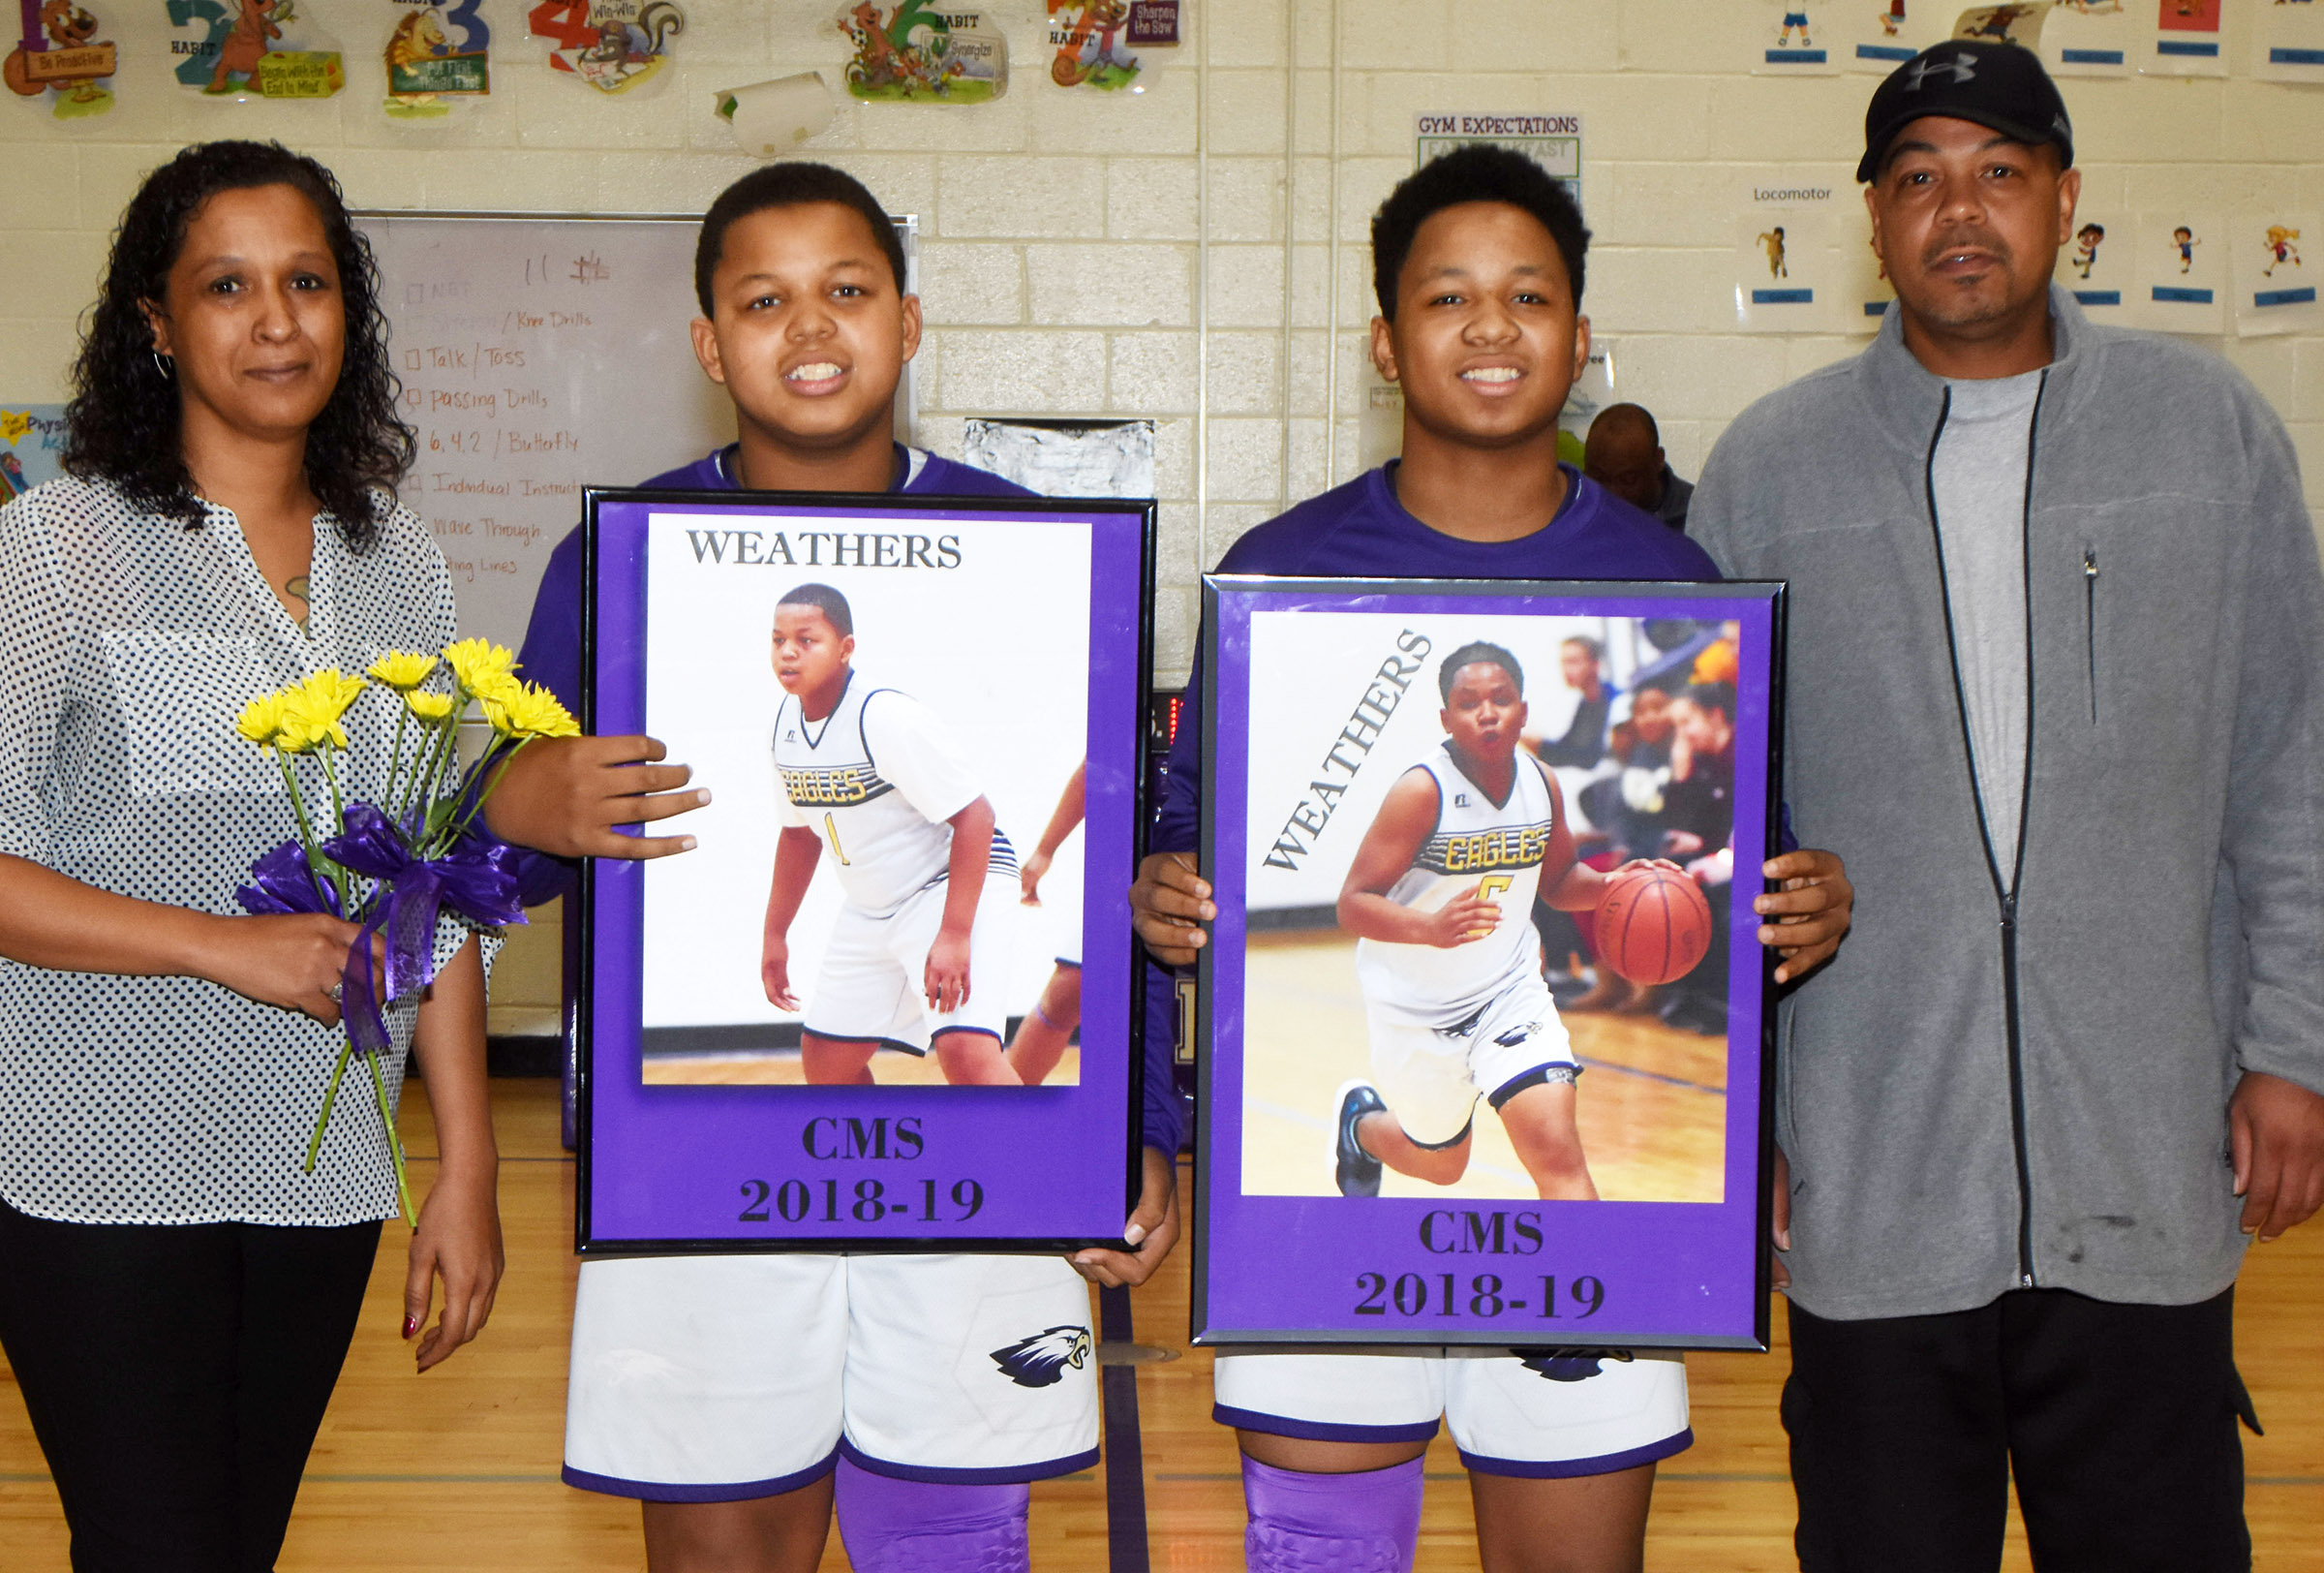 CMS boys' basketball eighth-grader players Keondre Weathers, at left, and Deondre Weathers are honored.